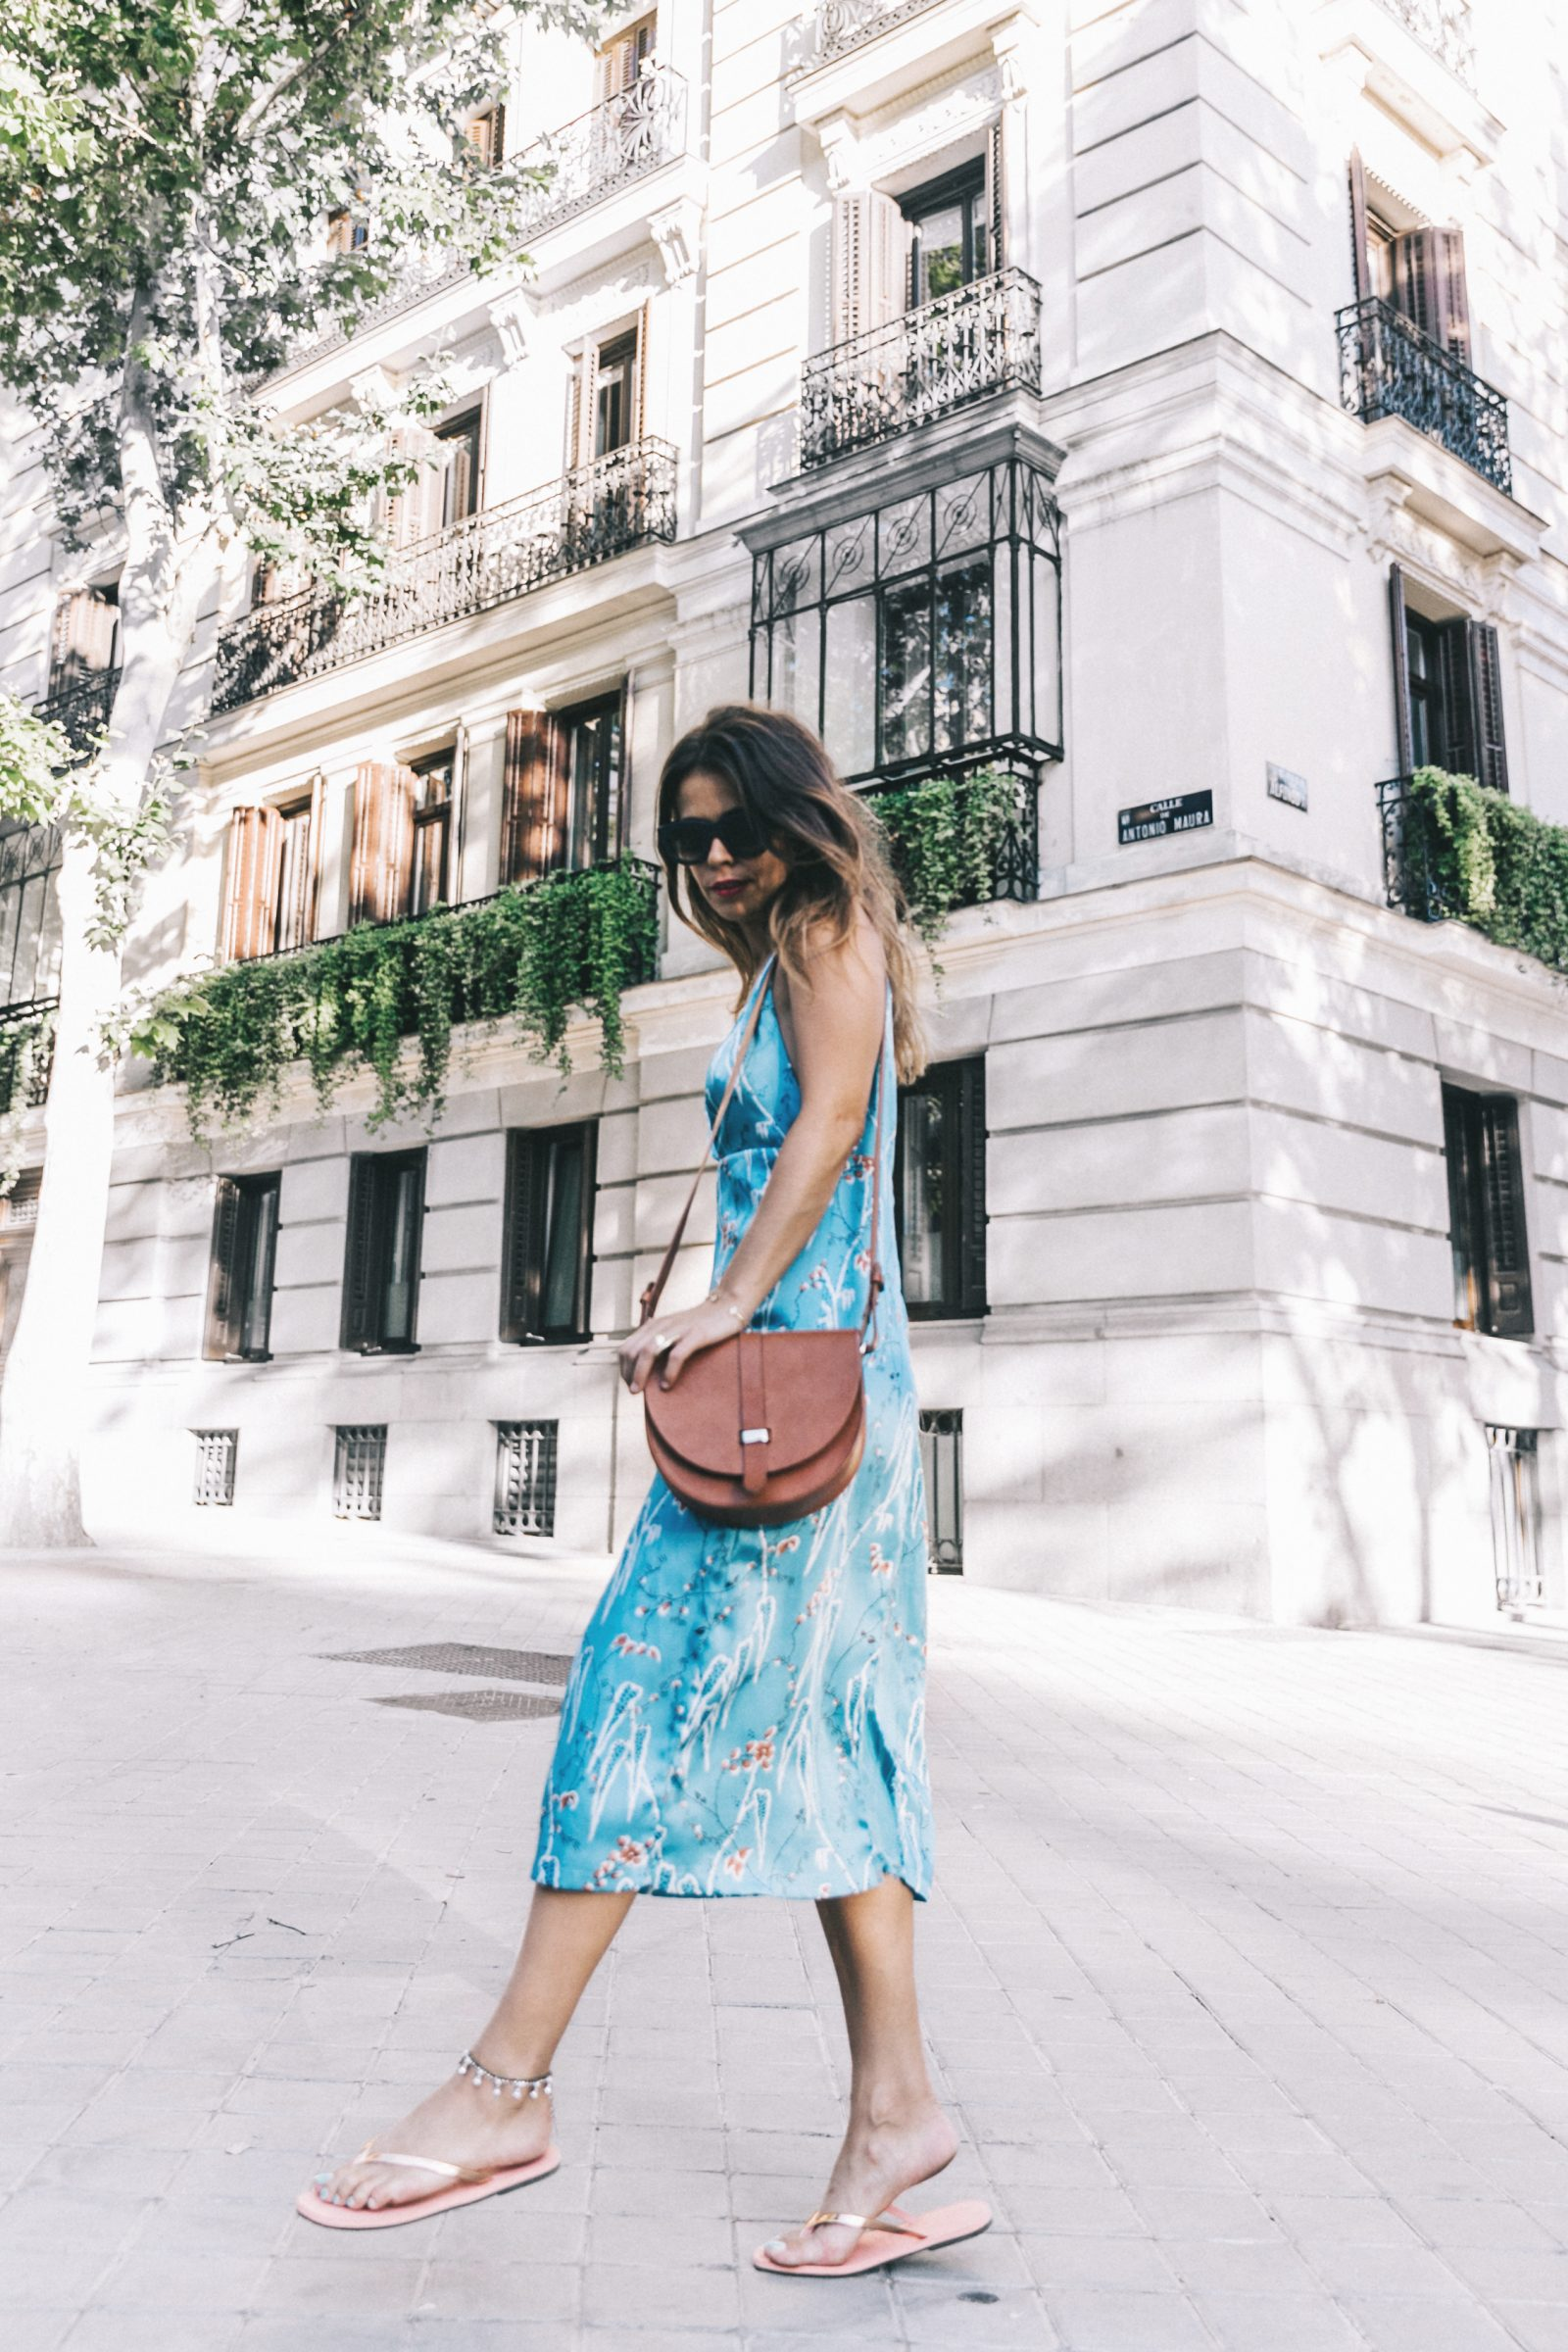 Outfit-Floral_Dress-Havaianas_Sandals-Summer-Sezane_Bag-Street_Style-Celine_Sunglasses-Collage_Vintage-9